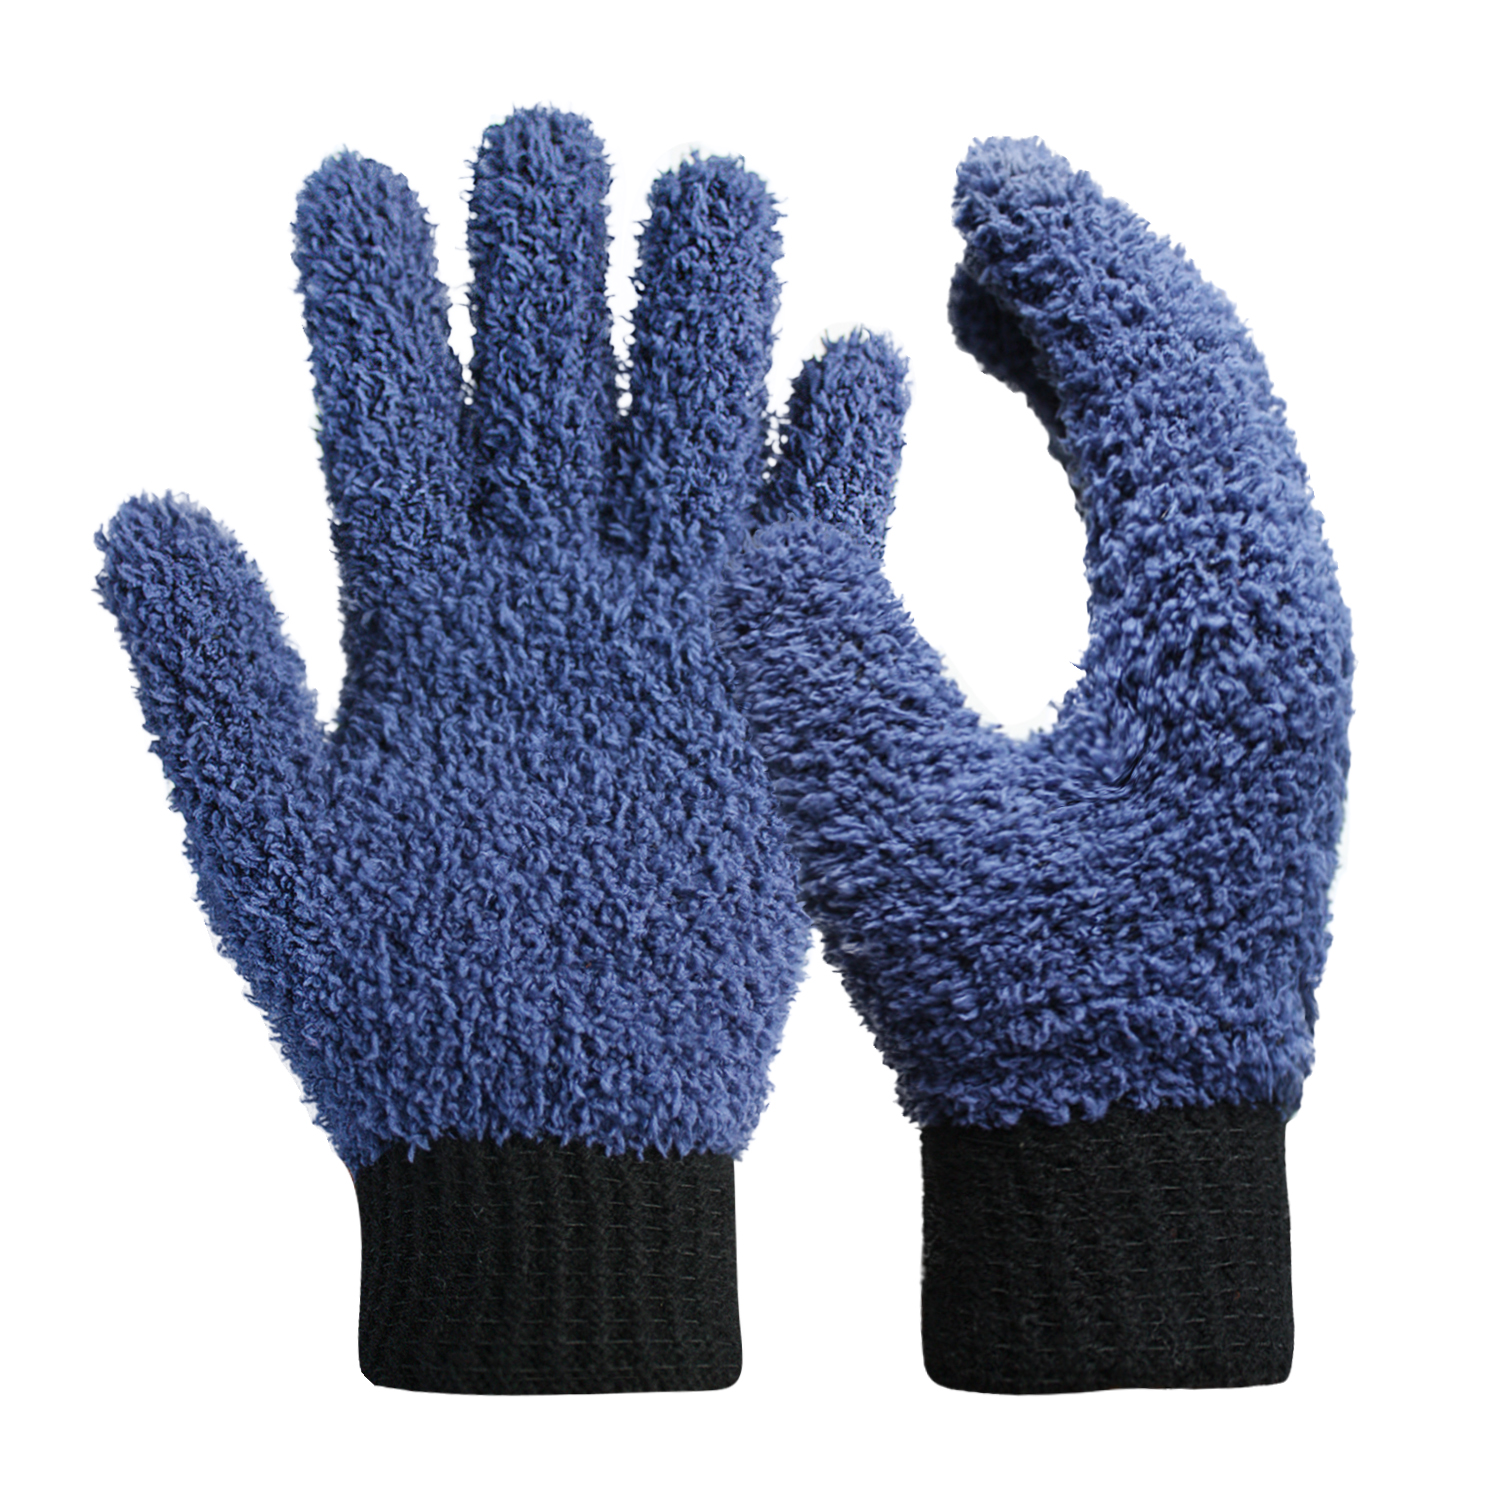 Microfiber Dusting Cleaning Gloves for House Cleaning/MDC-001-N